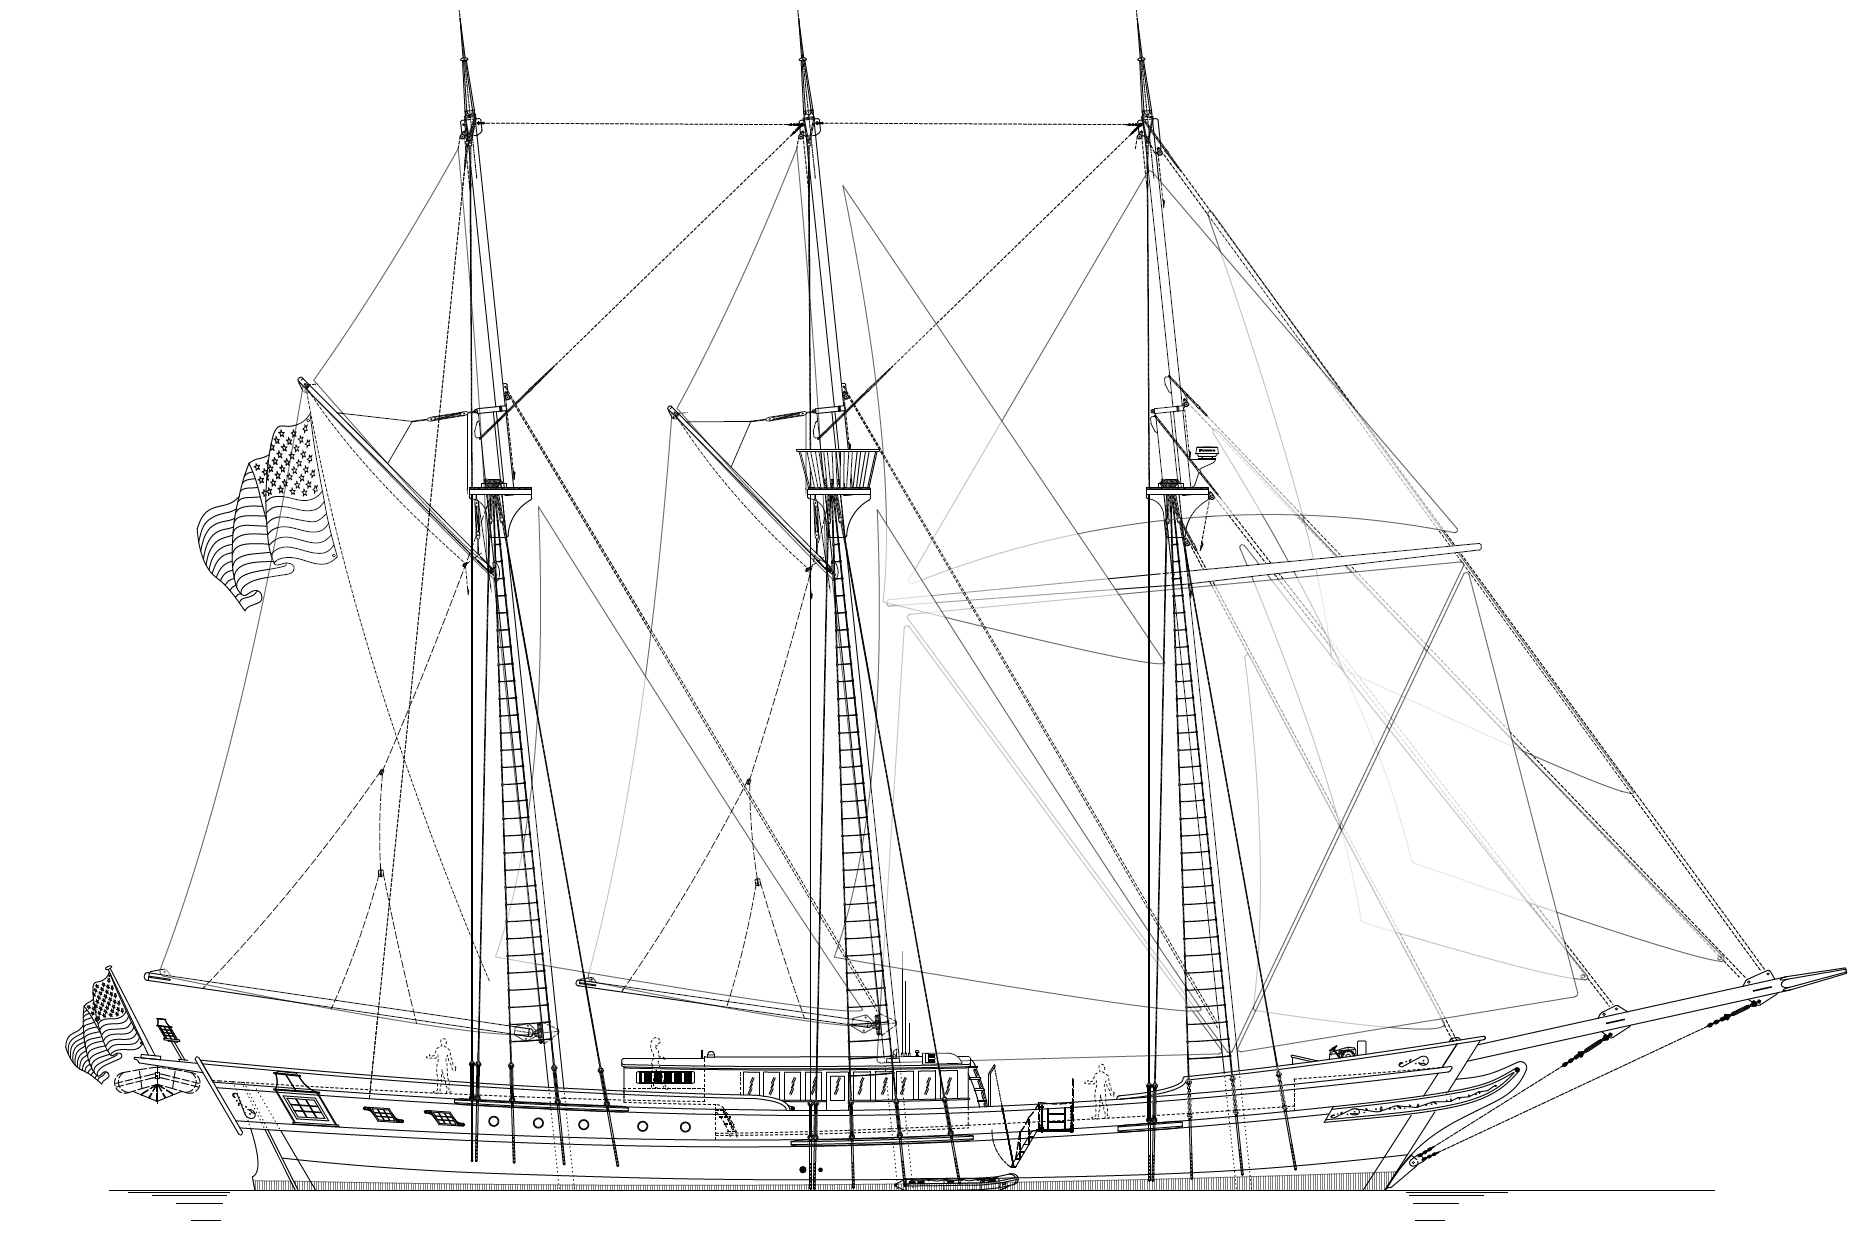 42m Barquentine - SHADOW LINE  - Kasten Marine Design, Inc.